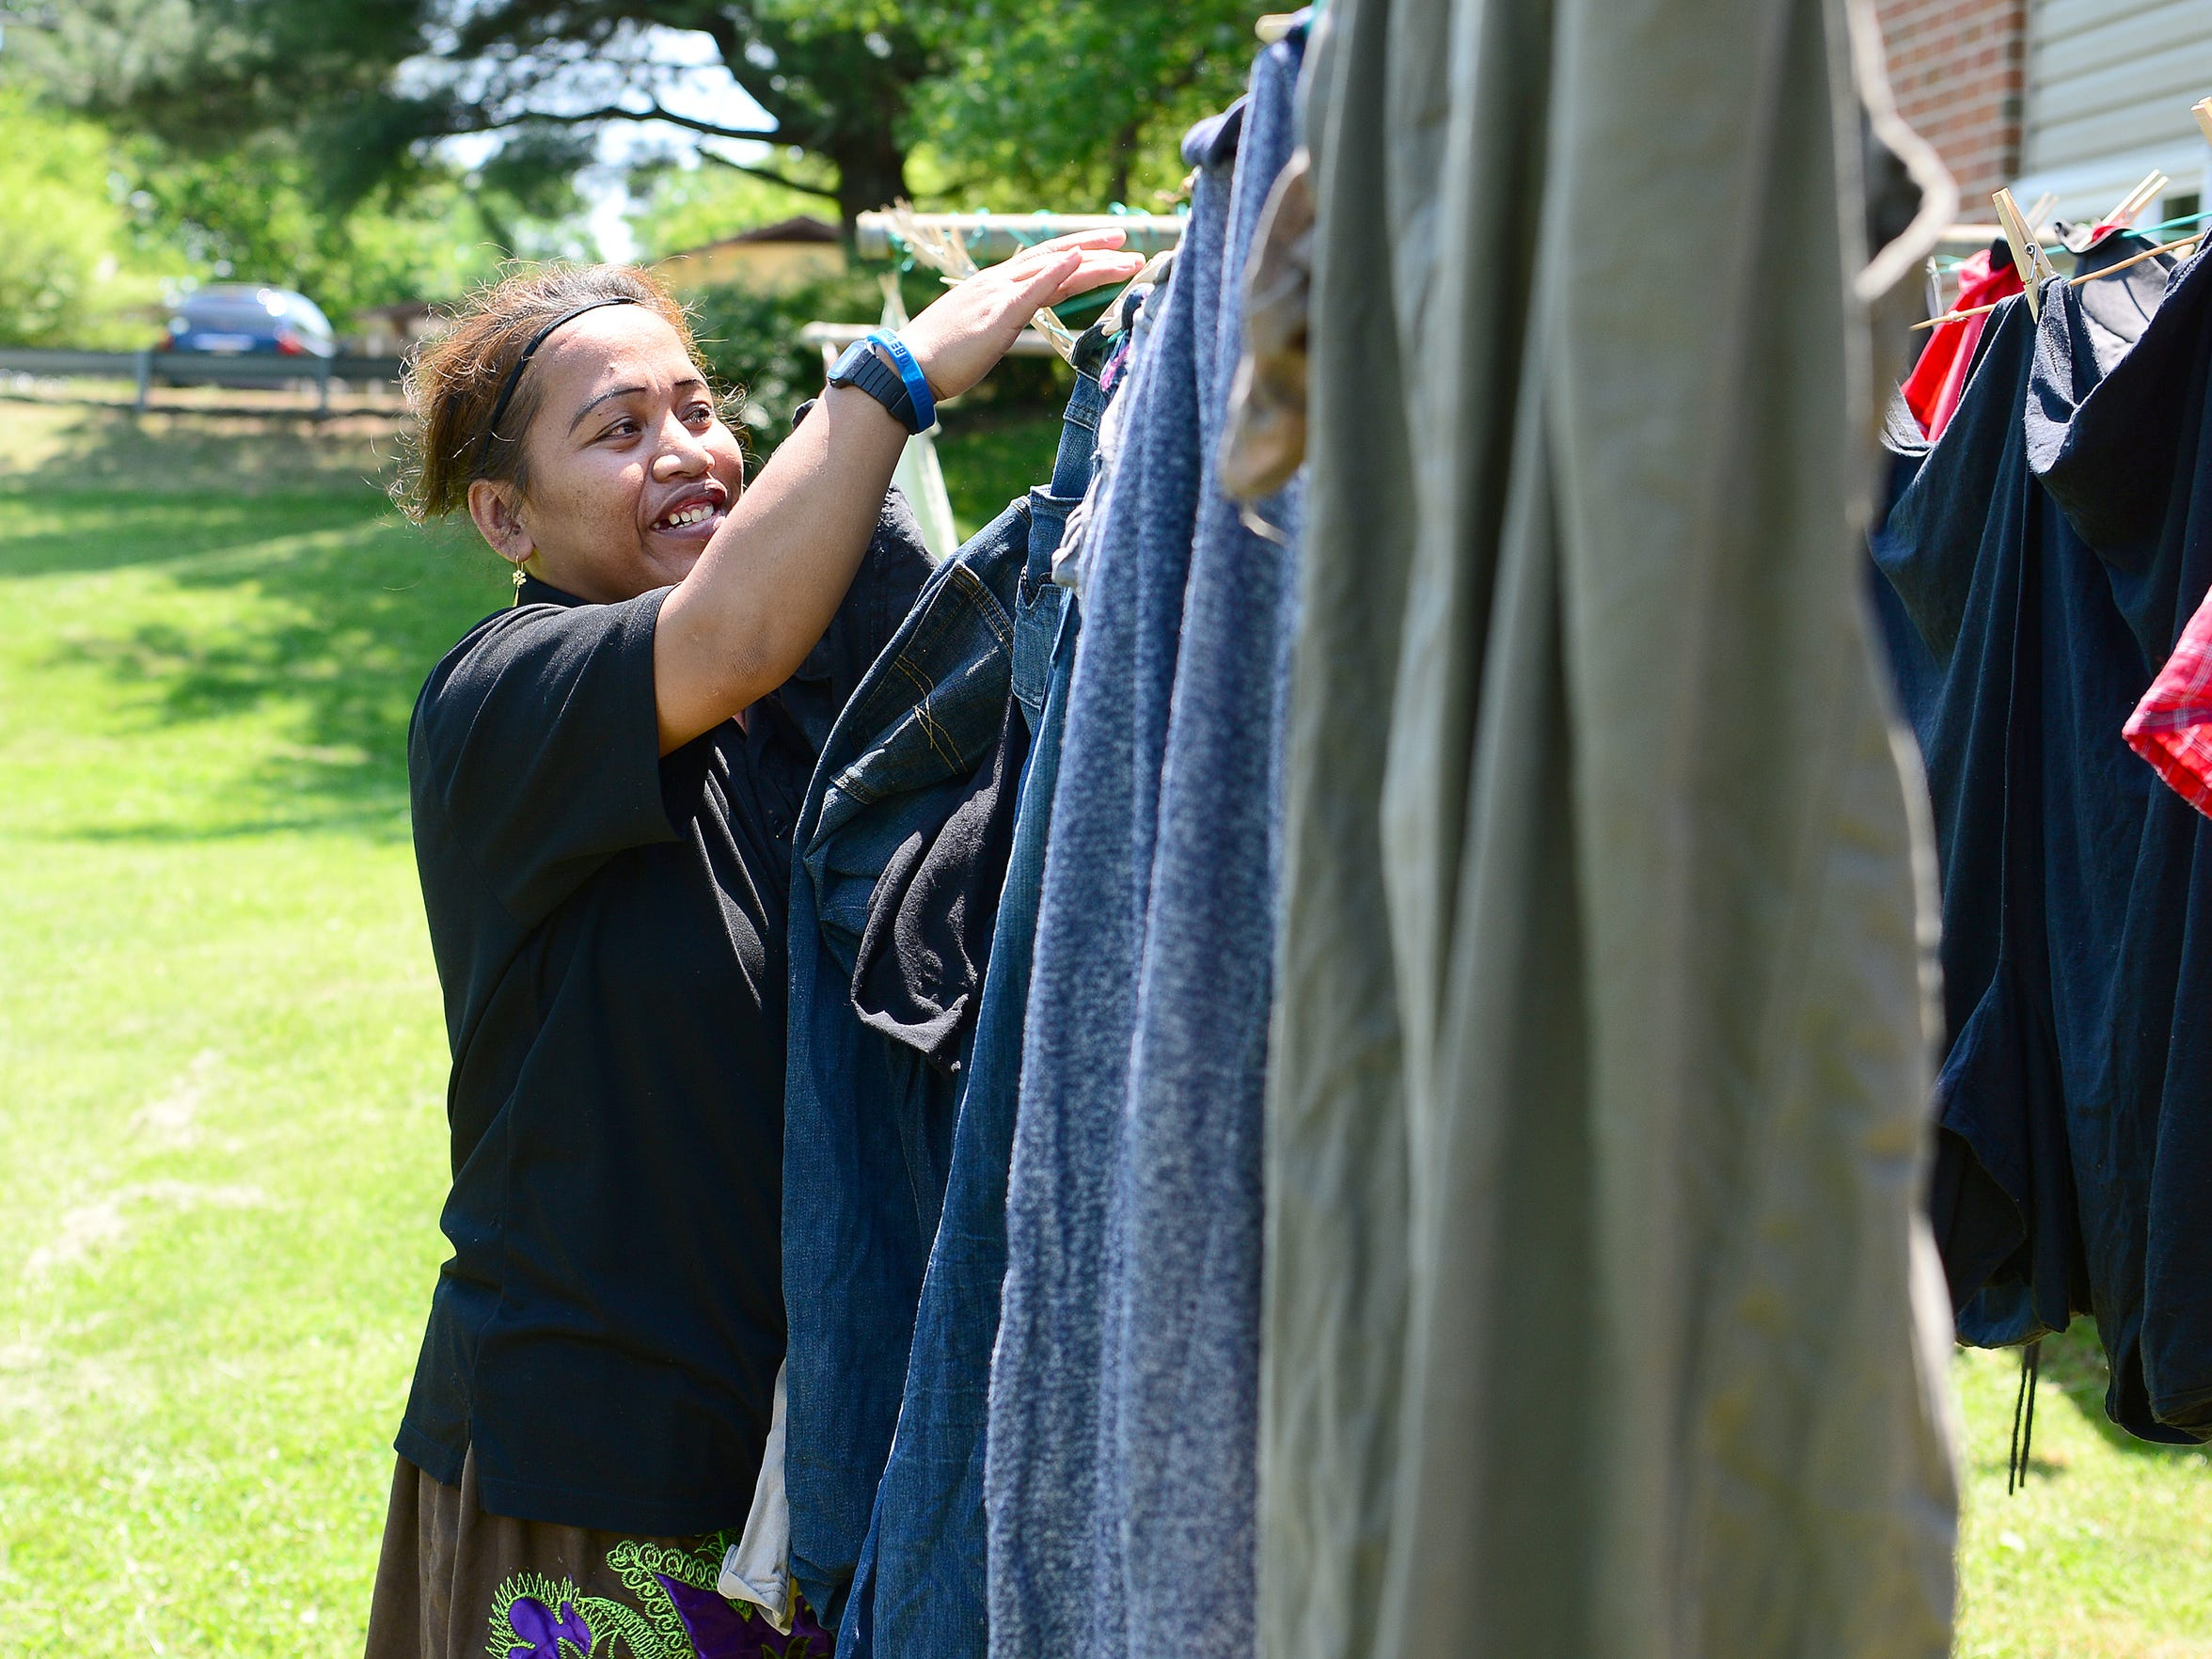 Deaverview resident Elena Jacklick takes her laundry